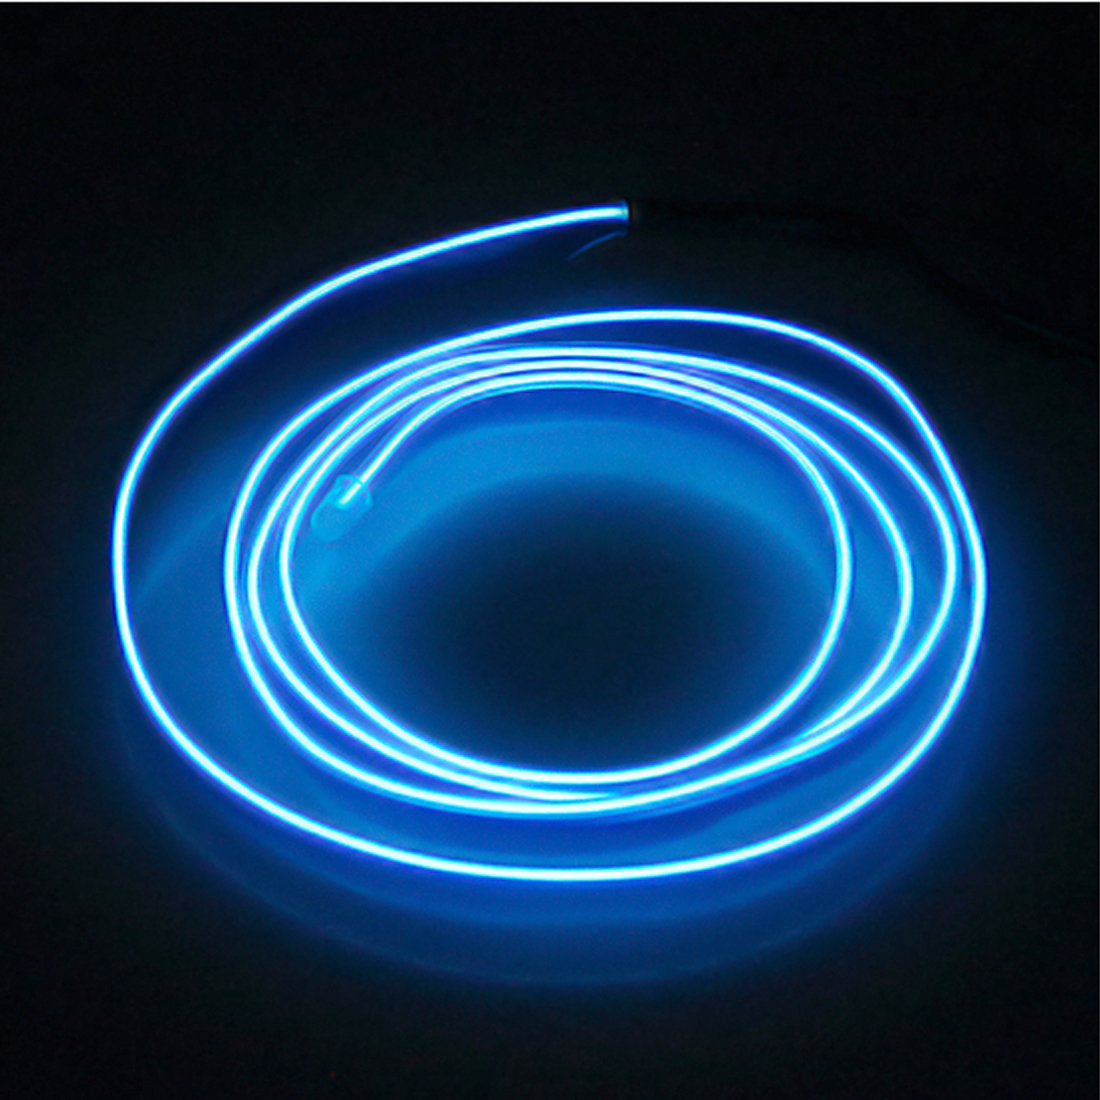 New Arrival 1m 2m 3m 5m 9mm Car decor lighter LED Lamp Strip thread sticker decals tags Flexible Neon Light EL Wire Rope